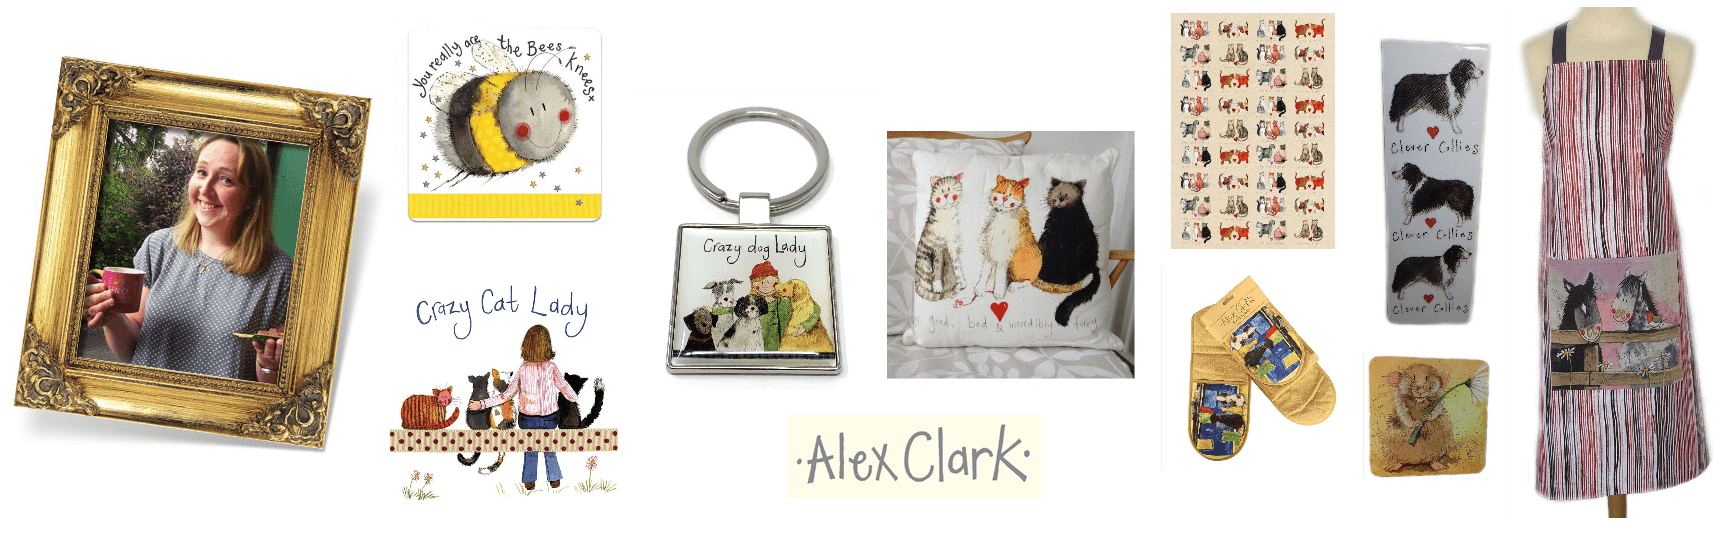 Alex Clark Art Gifts